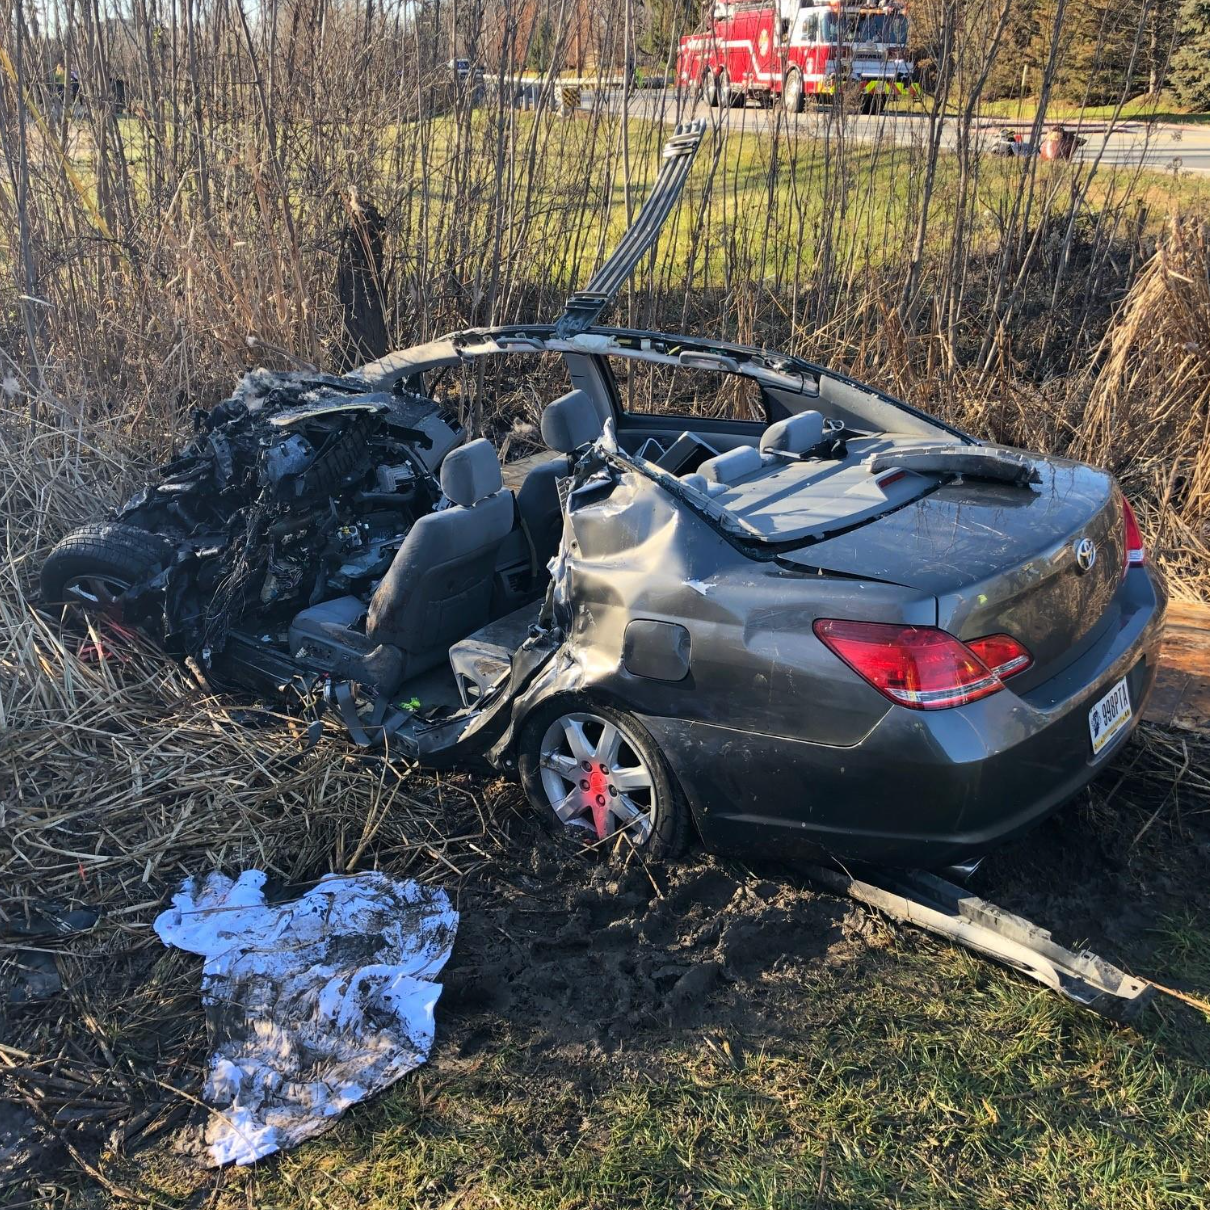 46-year-old Indianapolis man dead after head-on crash in Boone County